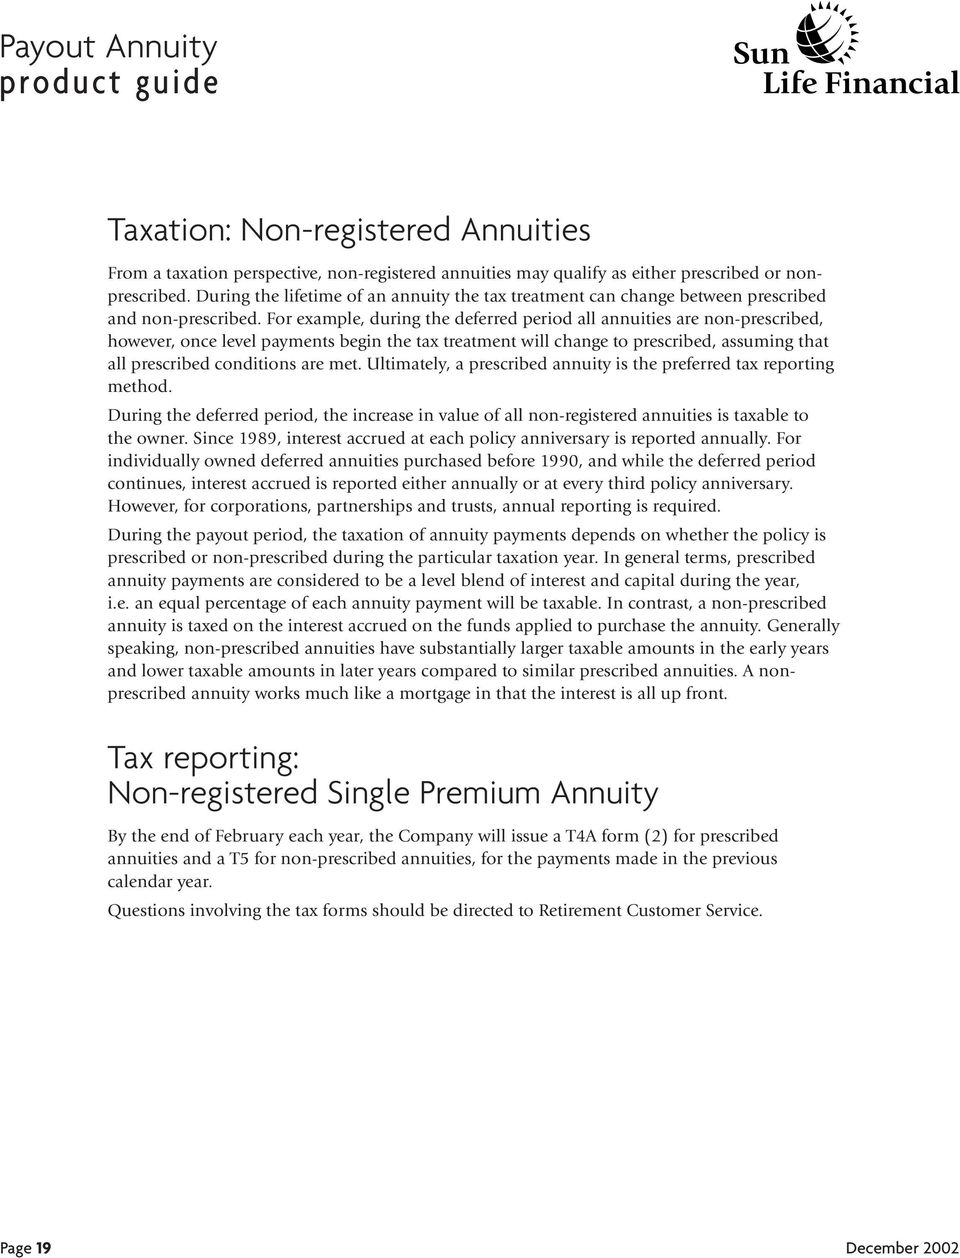 For example, during the deferred period all annuities are non-prescribed, however, once level payments begin the tax treatment will change to prescribed, assuming that all prescribed conditions are